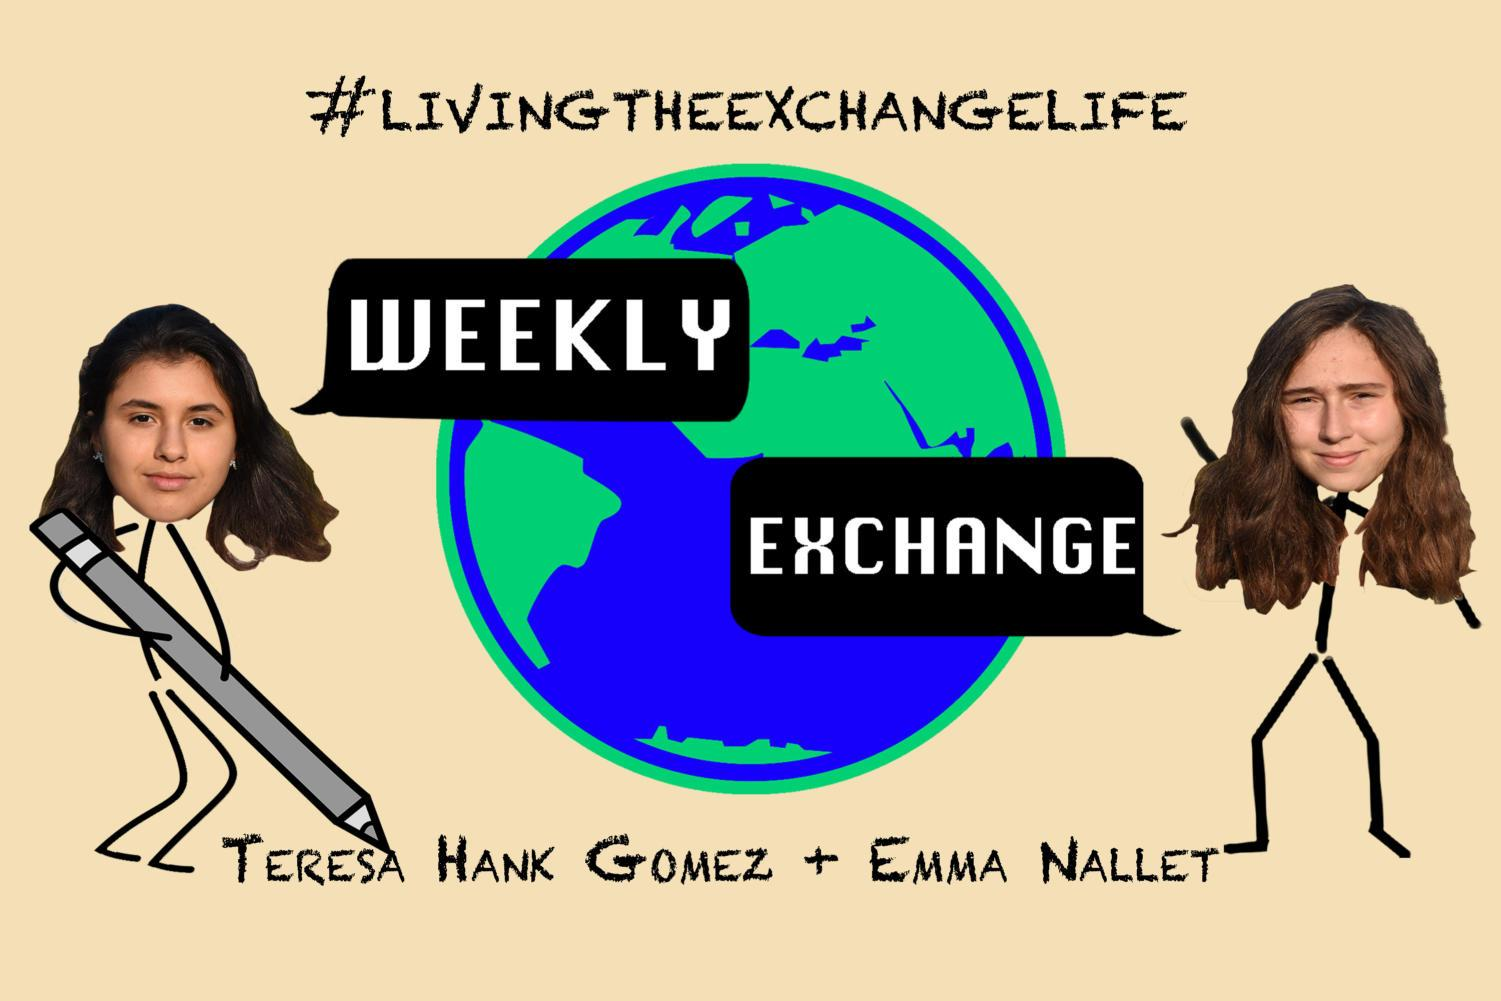 In the latest installment of Weekly Exchange, WSPN's Emma Nallet discusses the European refugee crisis from a new perspective after she gained a different insight during her experience in the US.